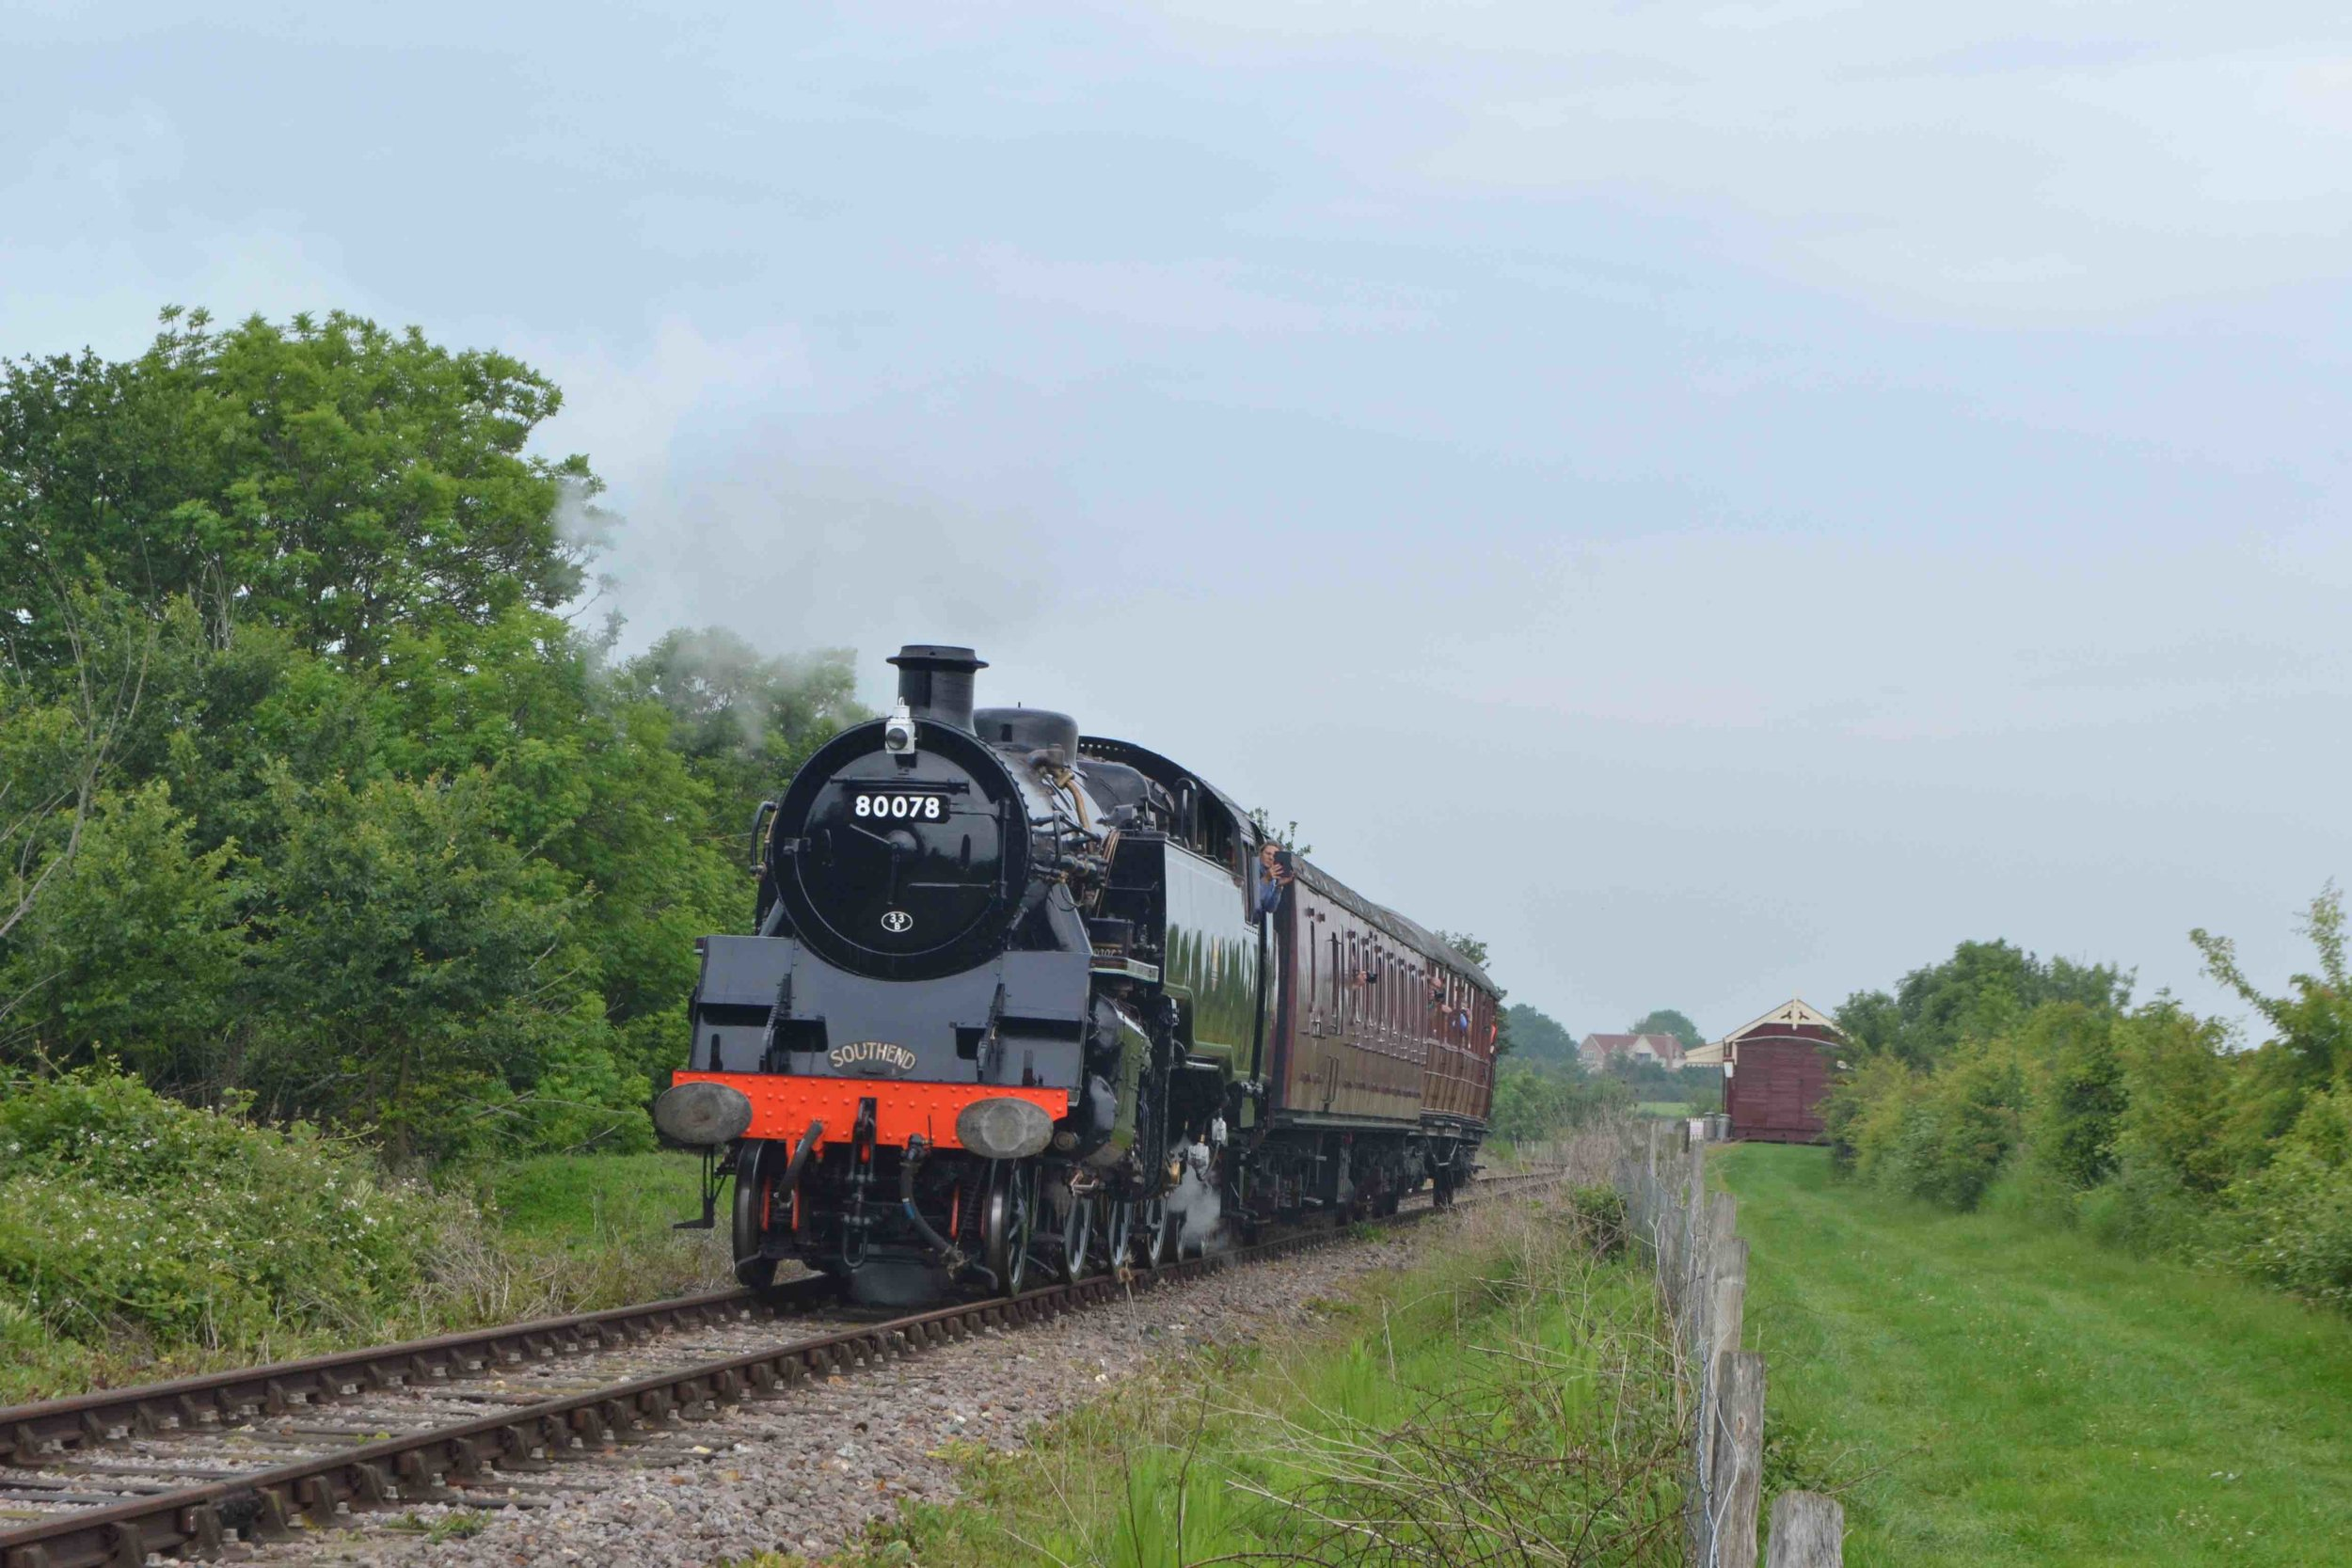 Fresh from overhaul, BR Standard '4MT' No. 80078 departs the Mangapps Railway Museum's Old Heath station on May 29. TOBY JENNINGS